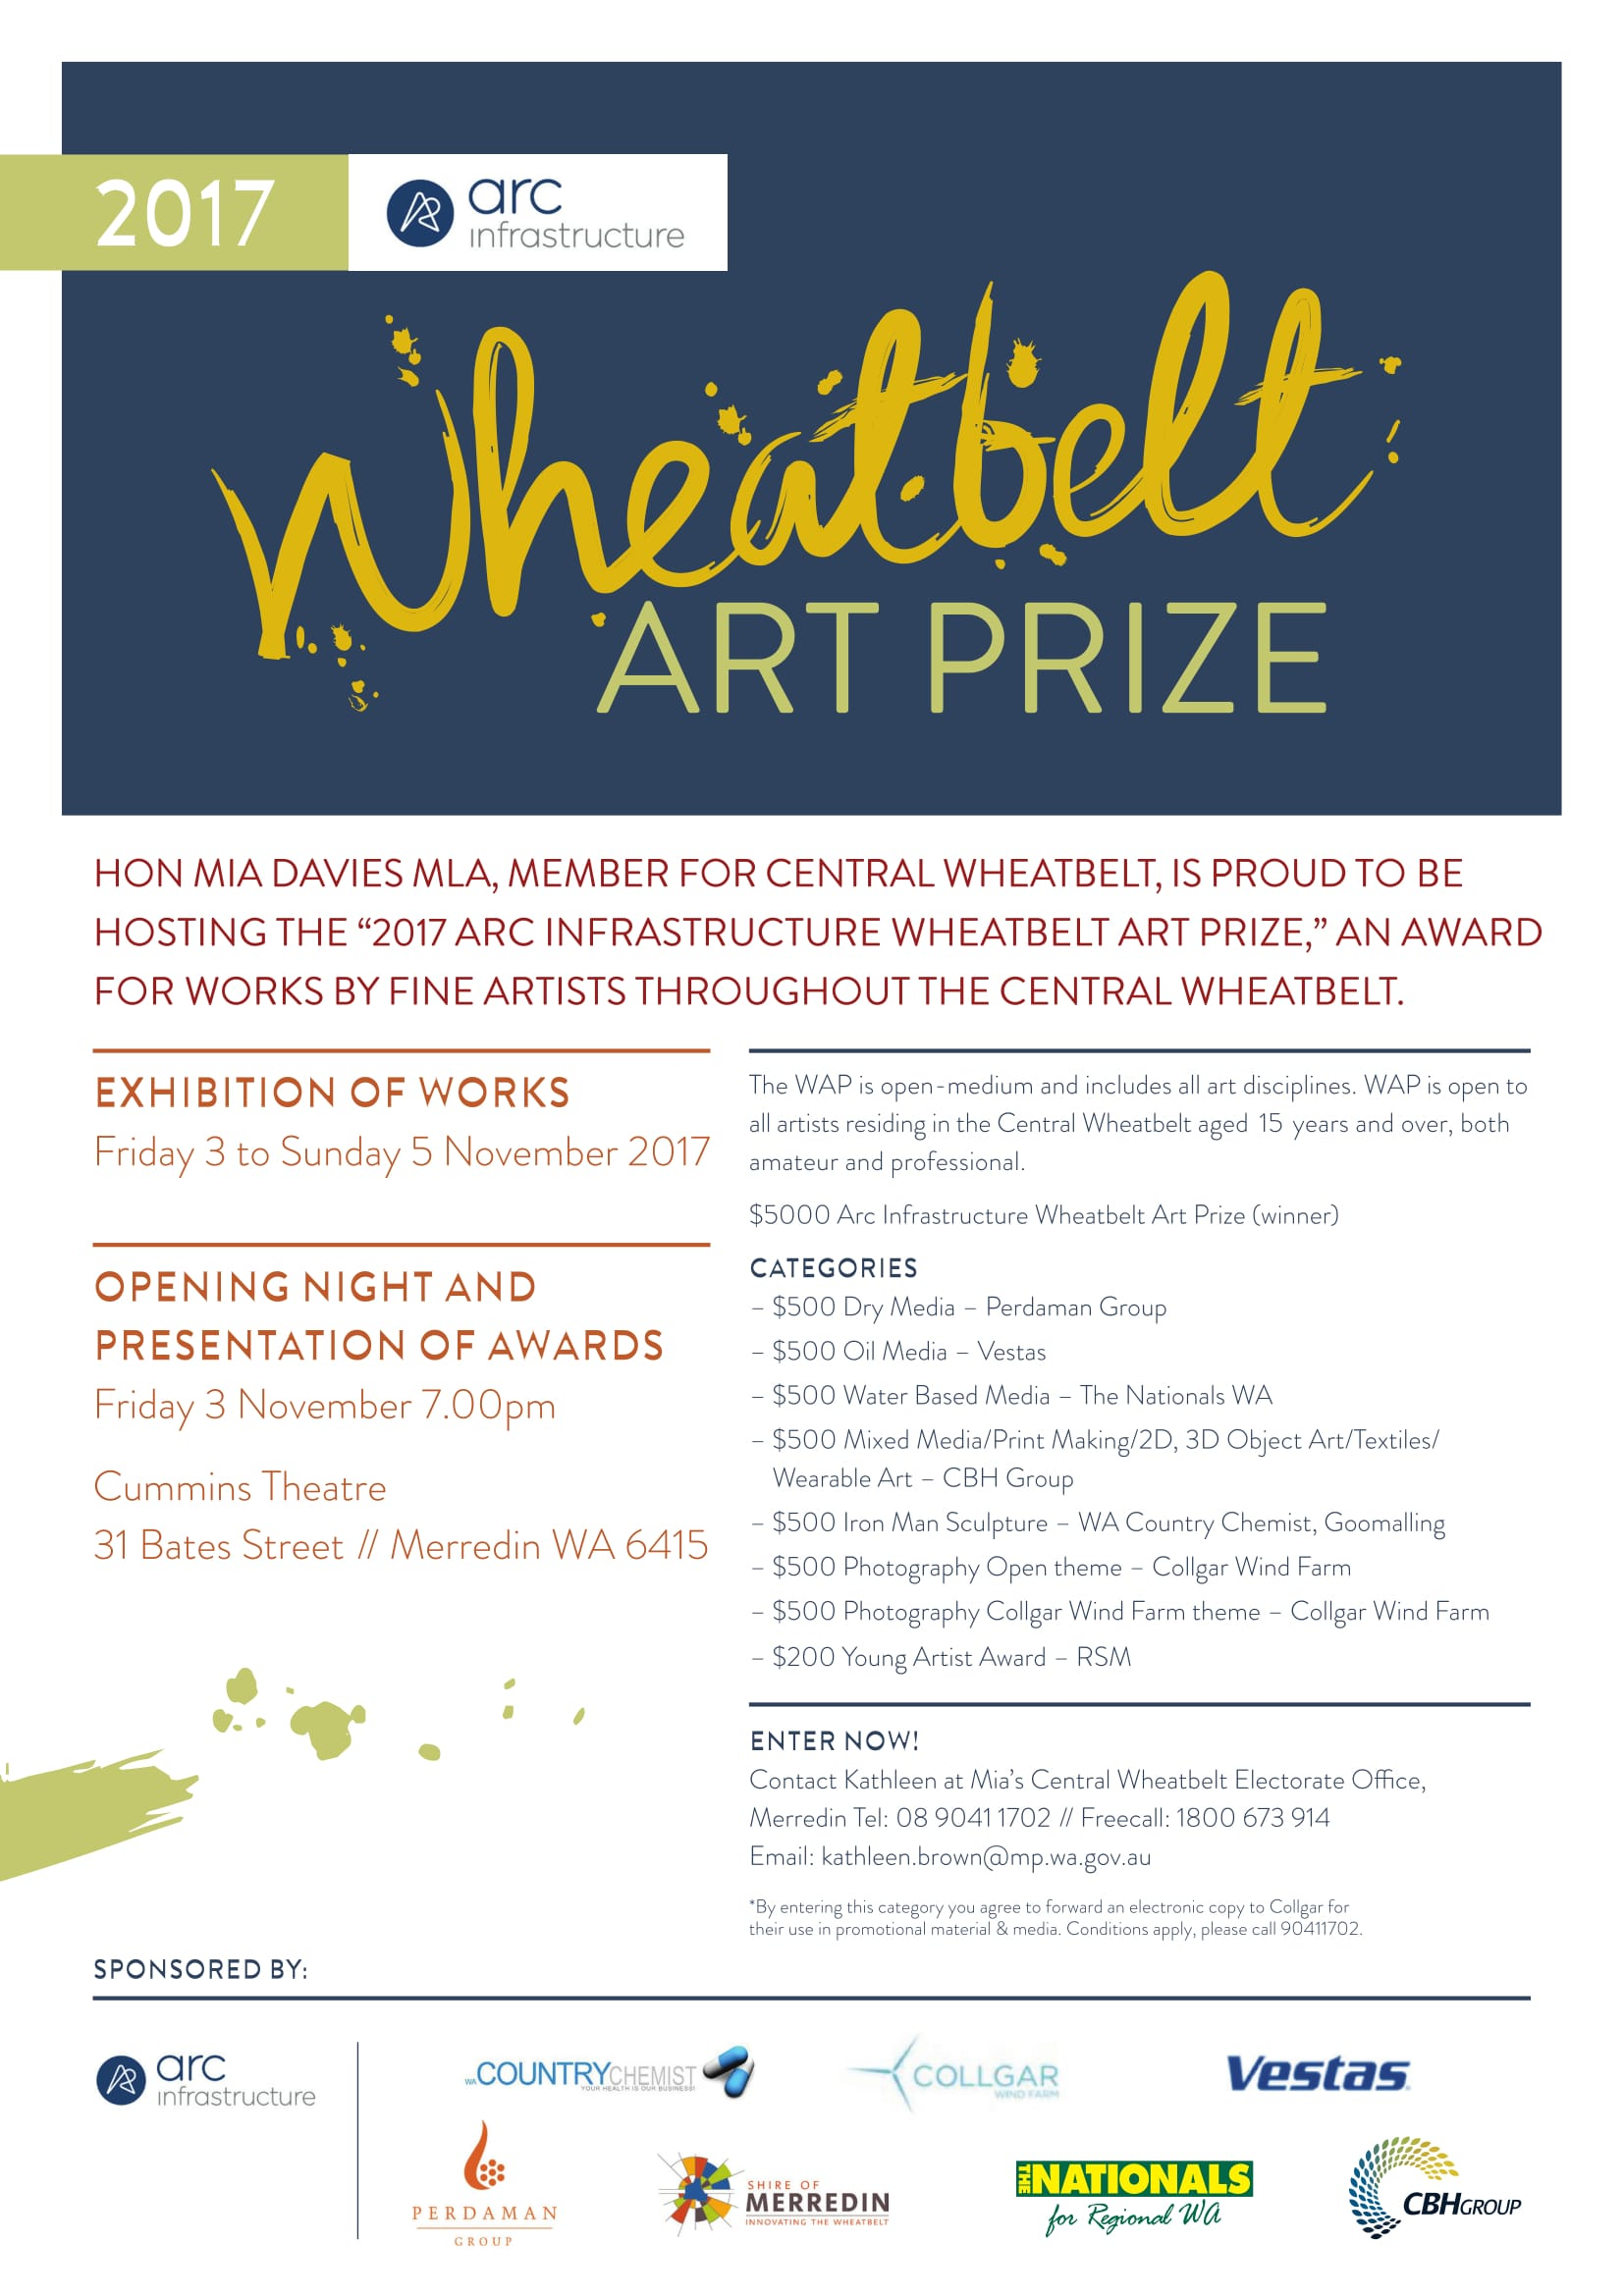 Wheatbelt_Art_Prize_Registration_Form_2017_W4_HR.cleaned-1.jpg